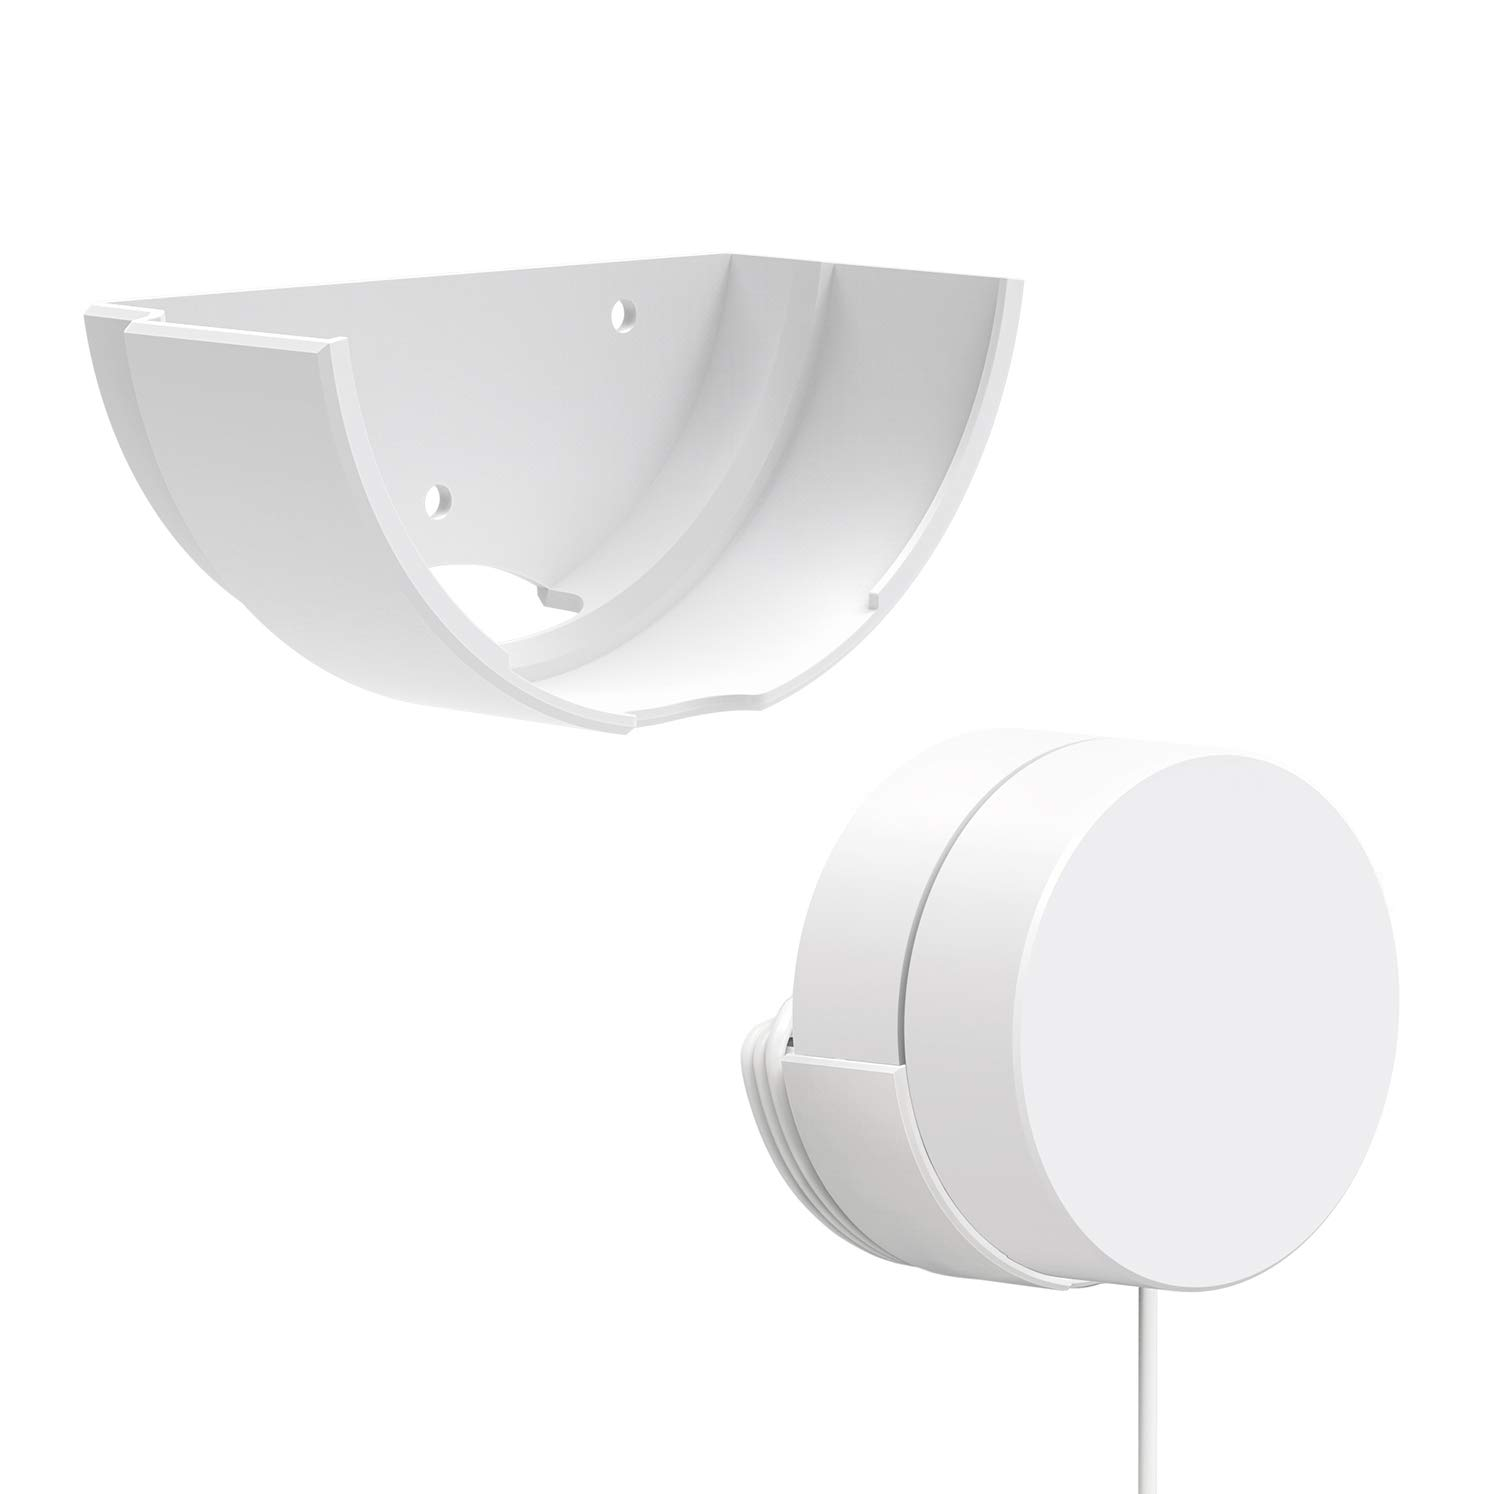 OFFICIAL LykusSource Google WiFi Wall Mount Bracket with Cord Organizer 1-Pack